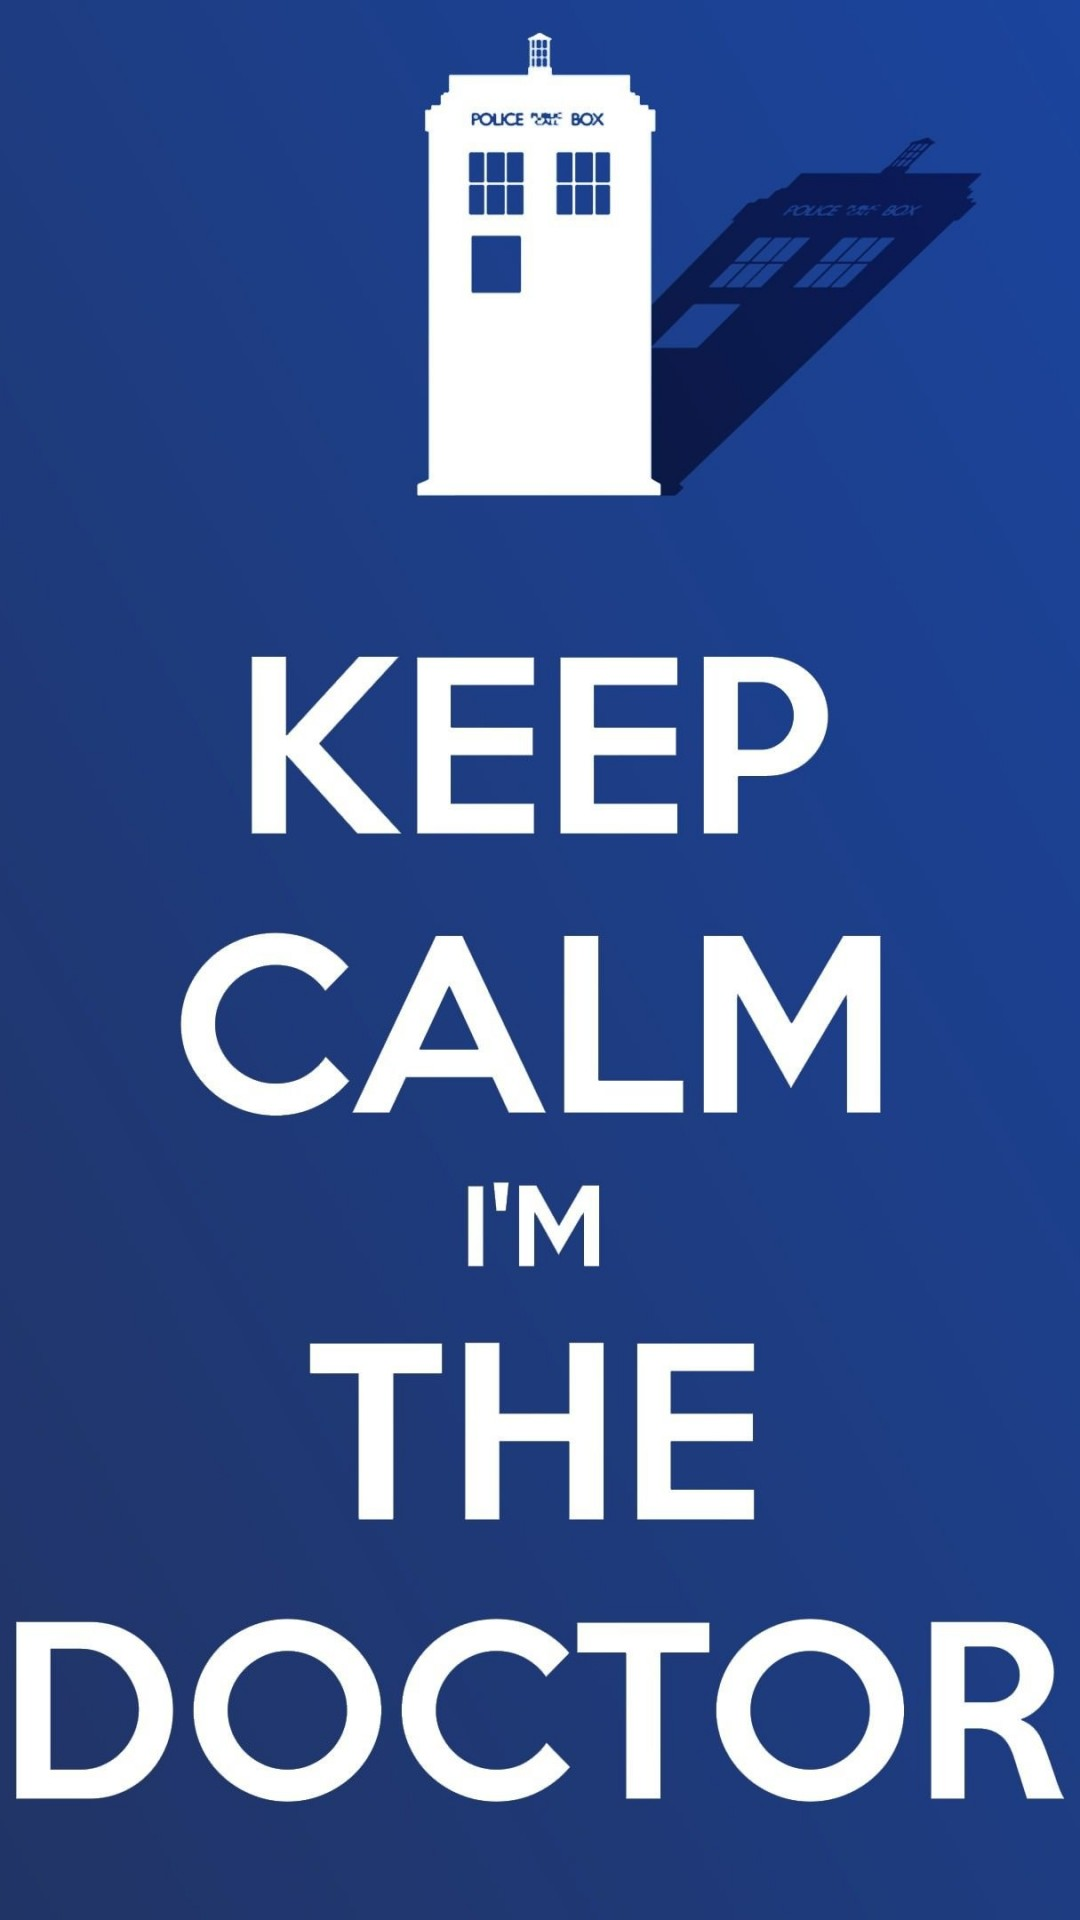 Keep Calm Im The Doctor Wallpaper for SAMSUNG Galaxy Note 3